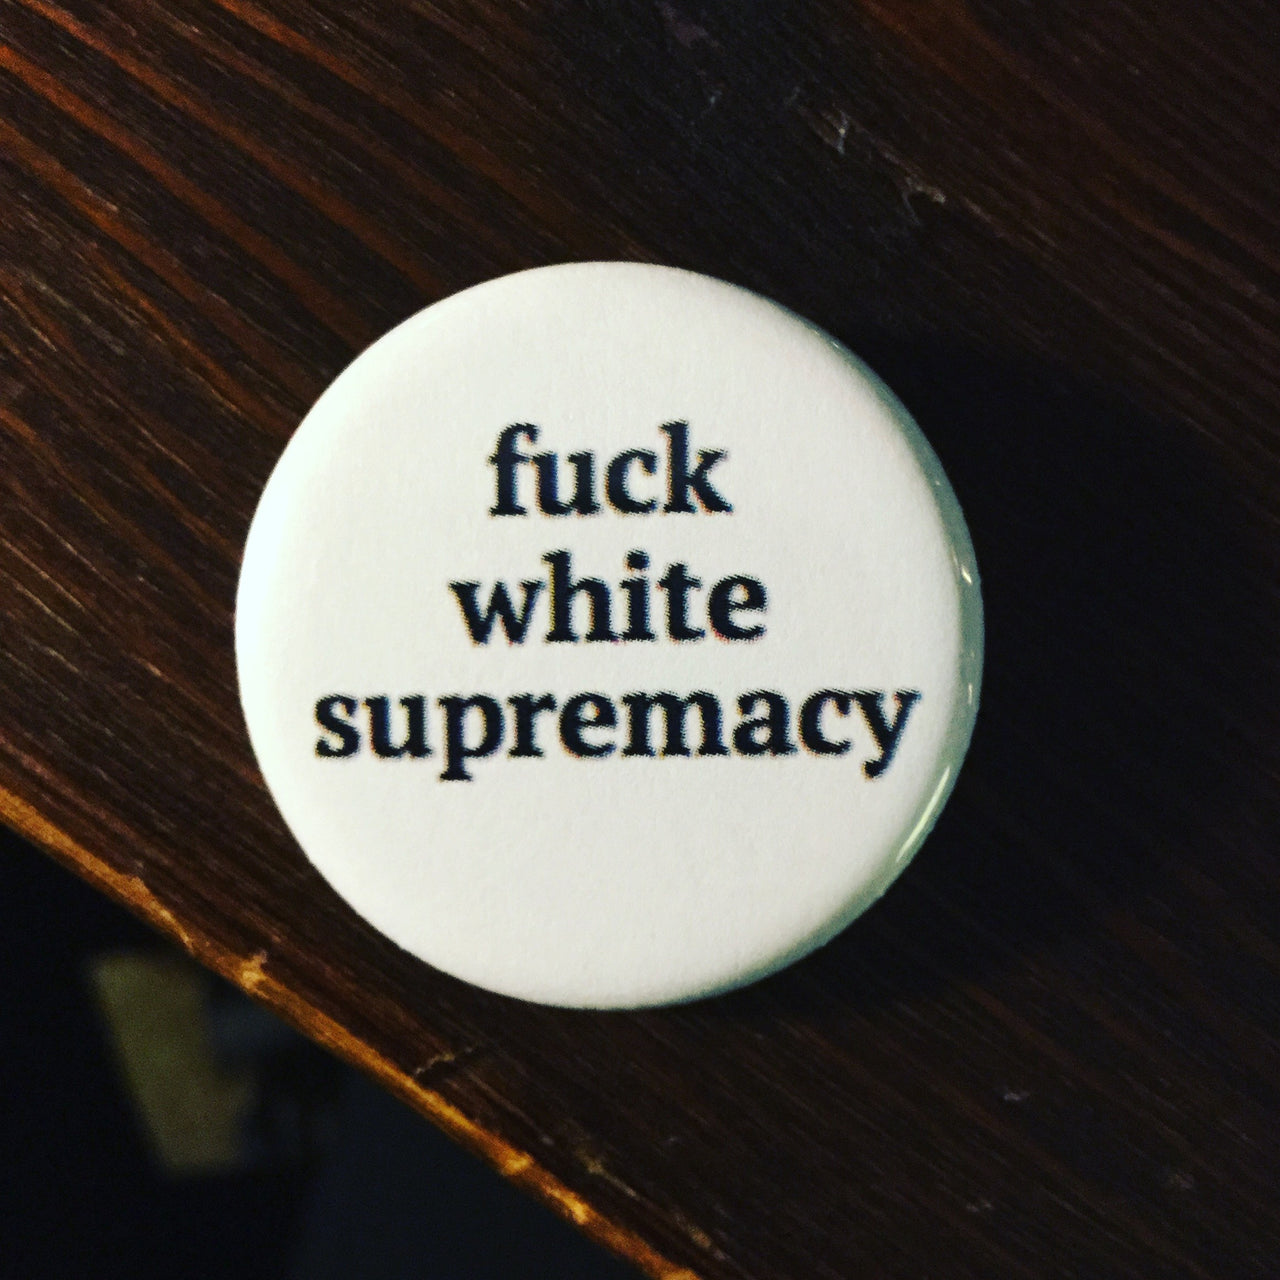 Fuck white supremacy - Radical Buttons